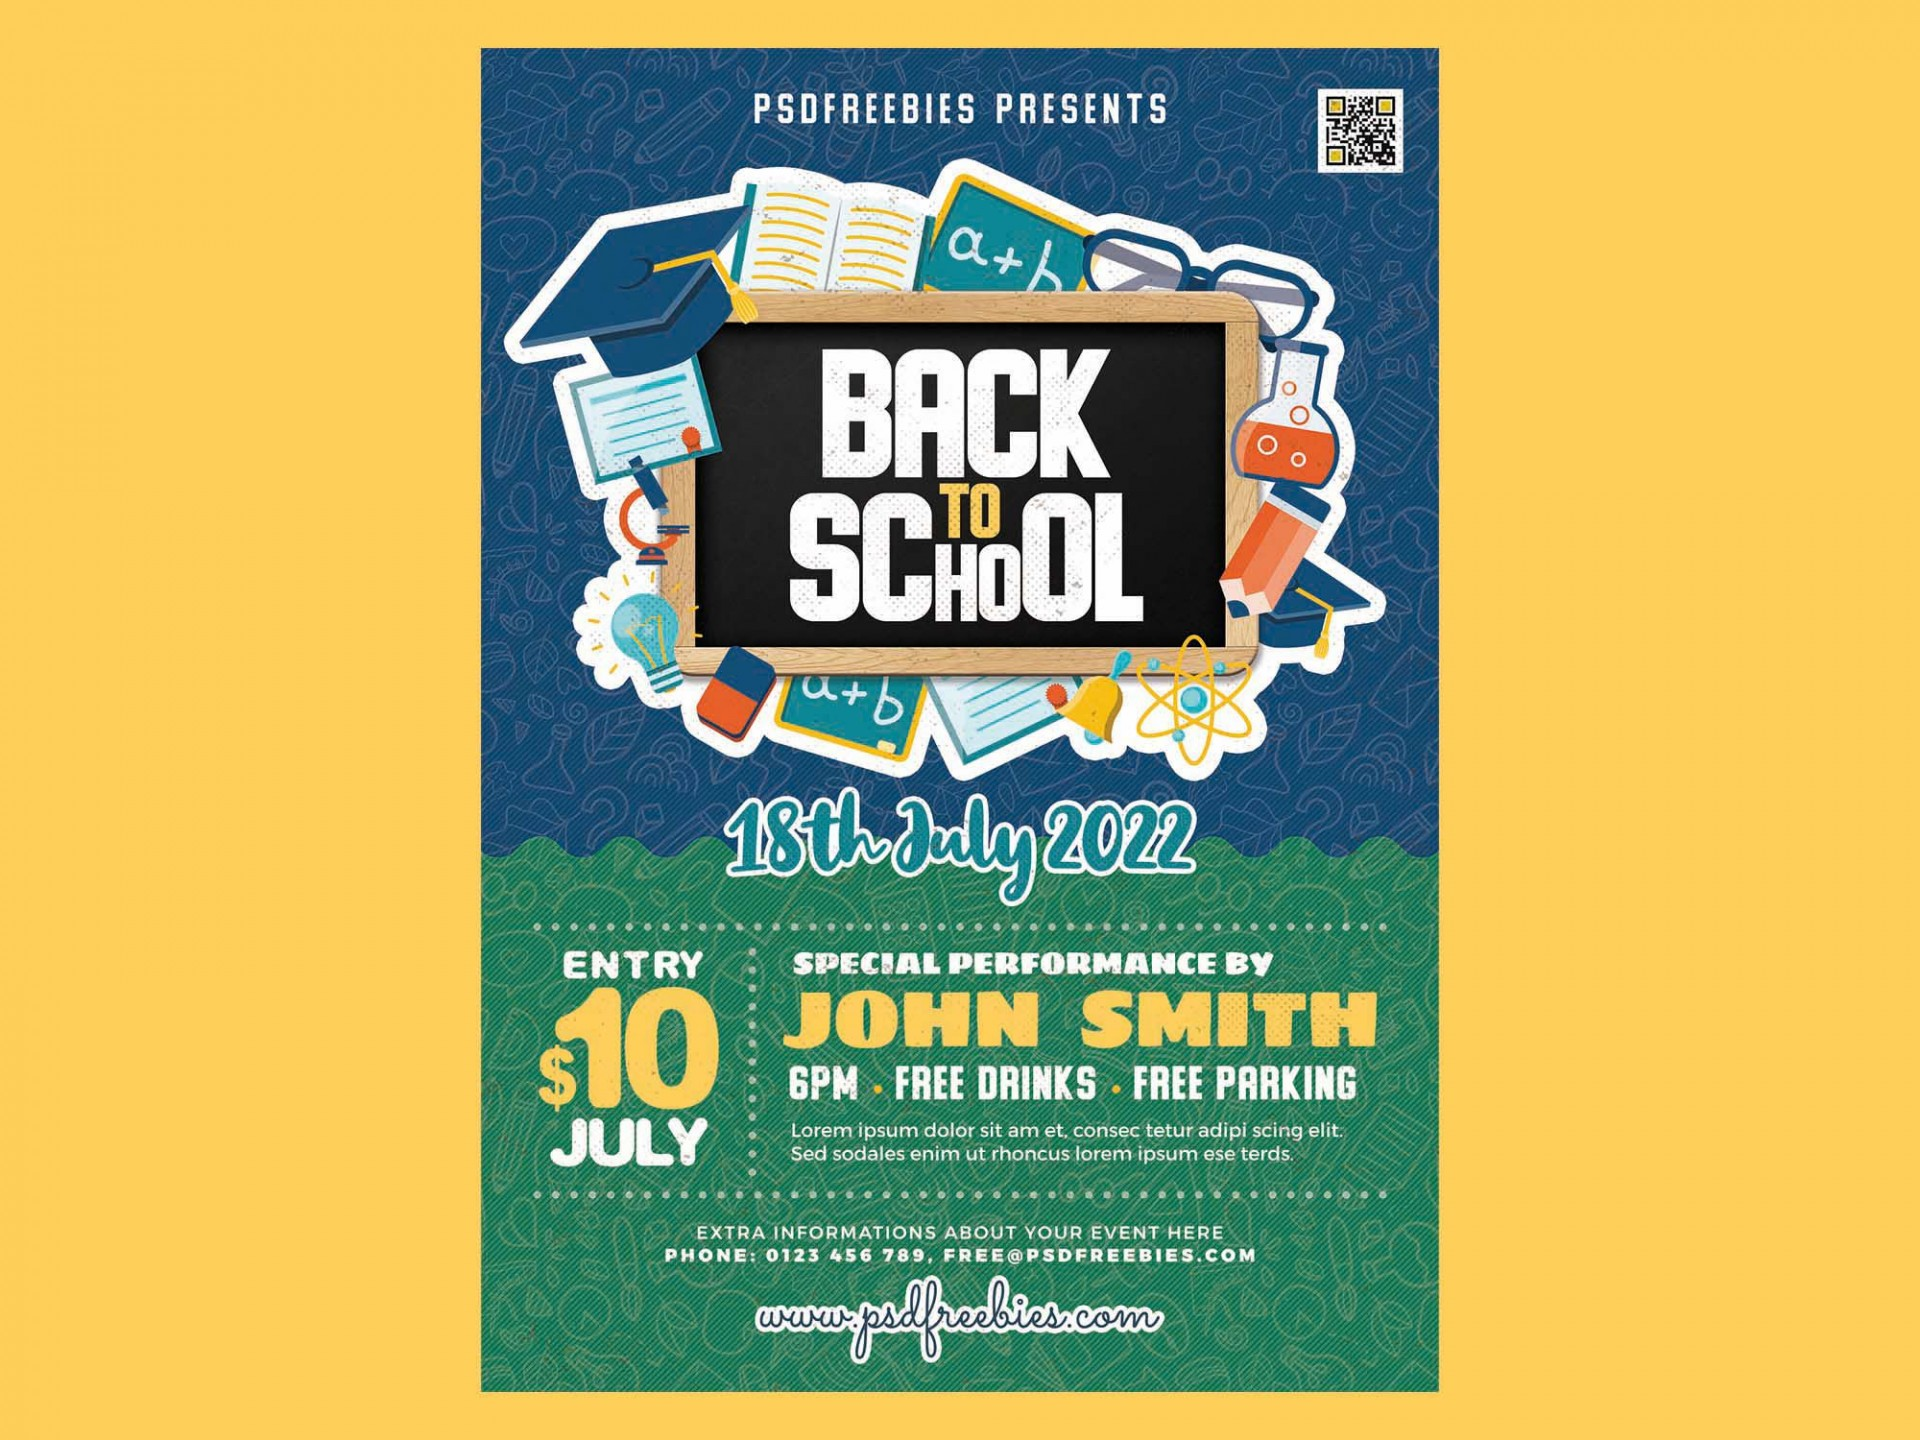 005 Top Free School Event Flyer Template High Def  Templates1920